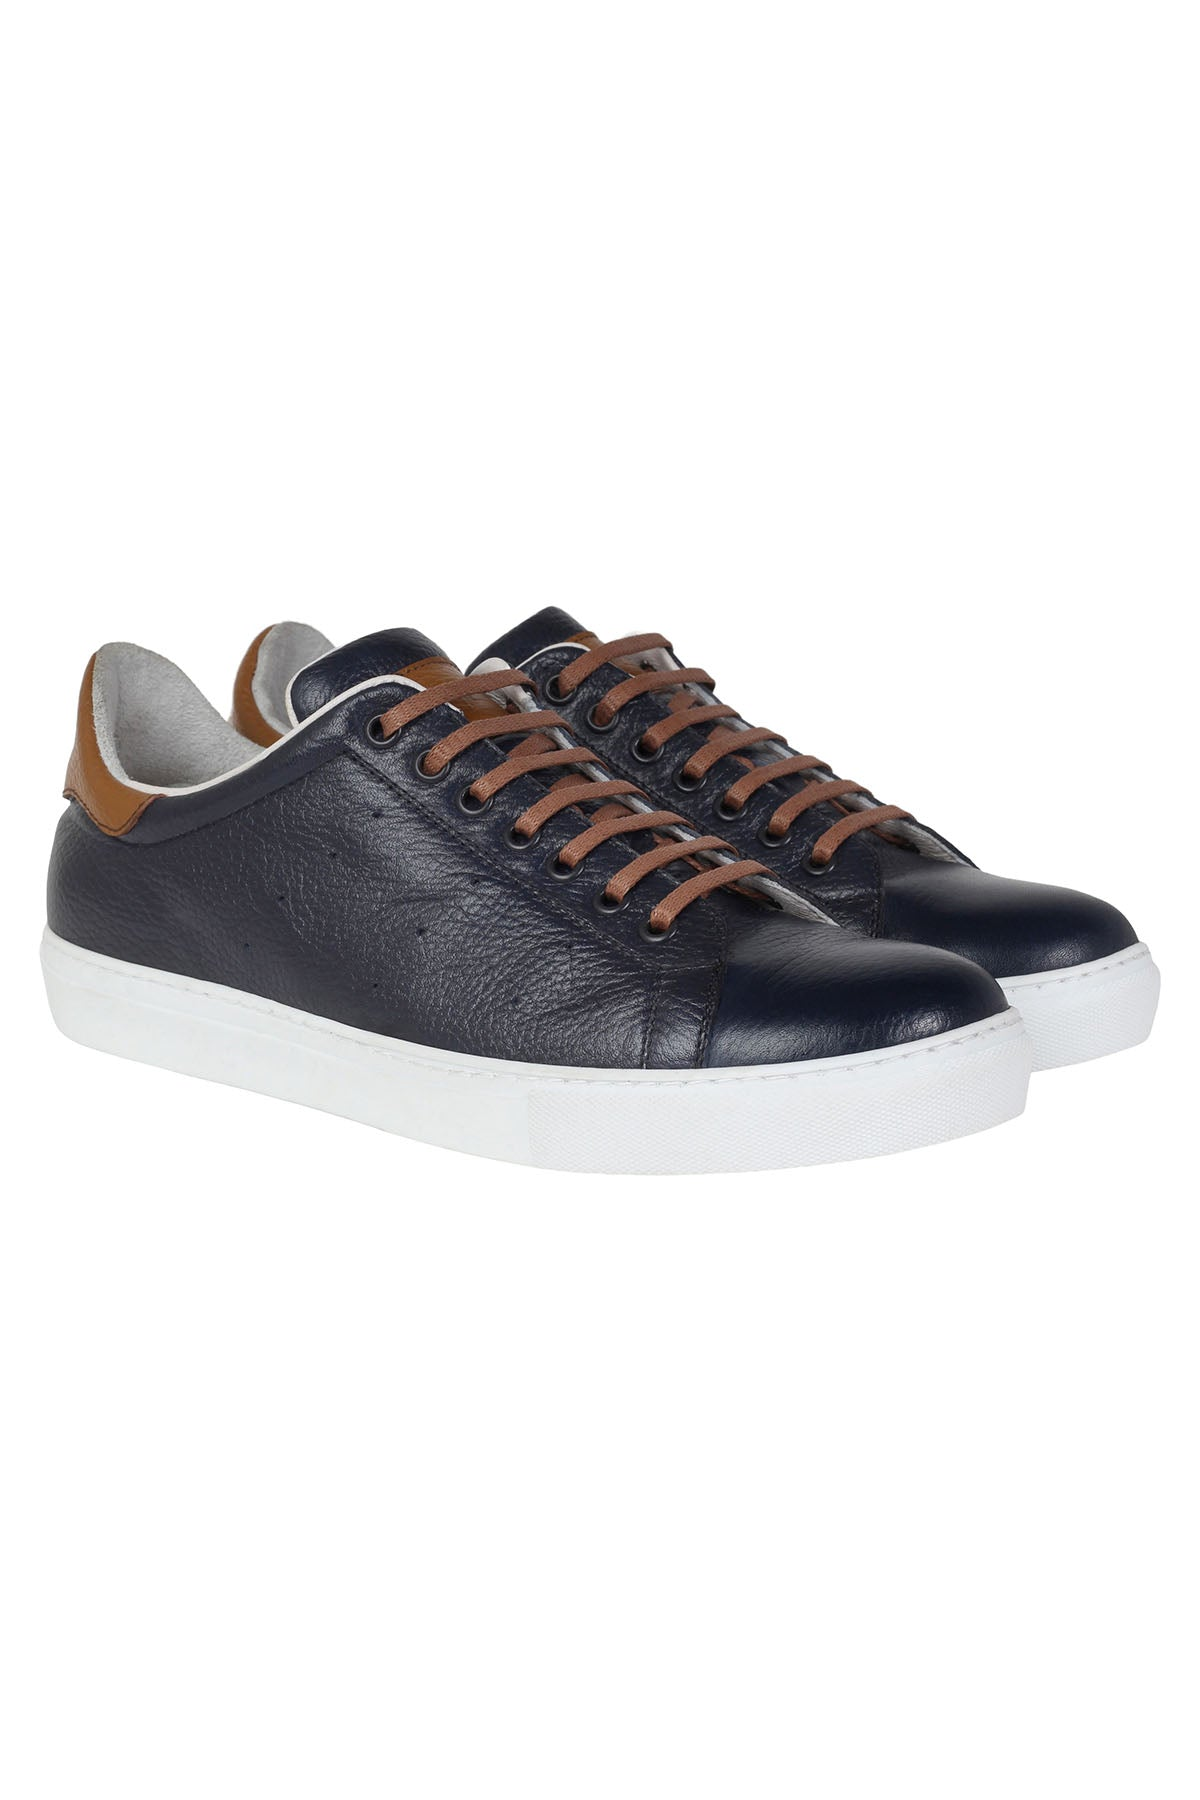 ANNU STREET WEAR RetroOnes sneakers